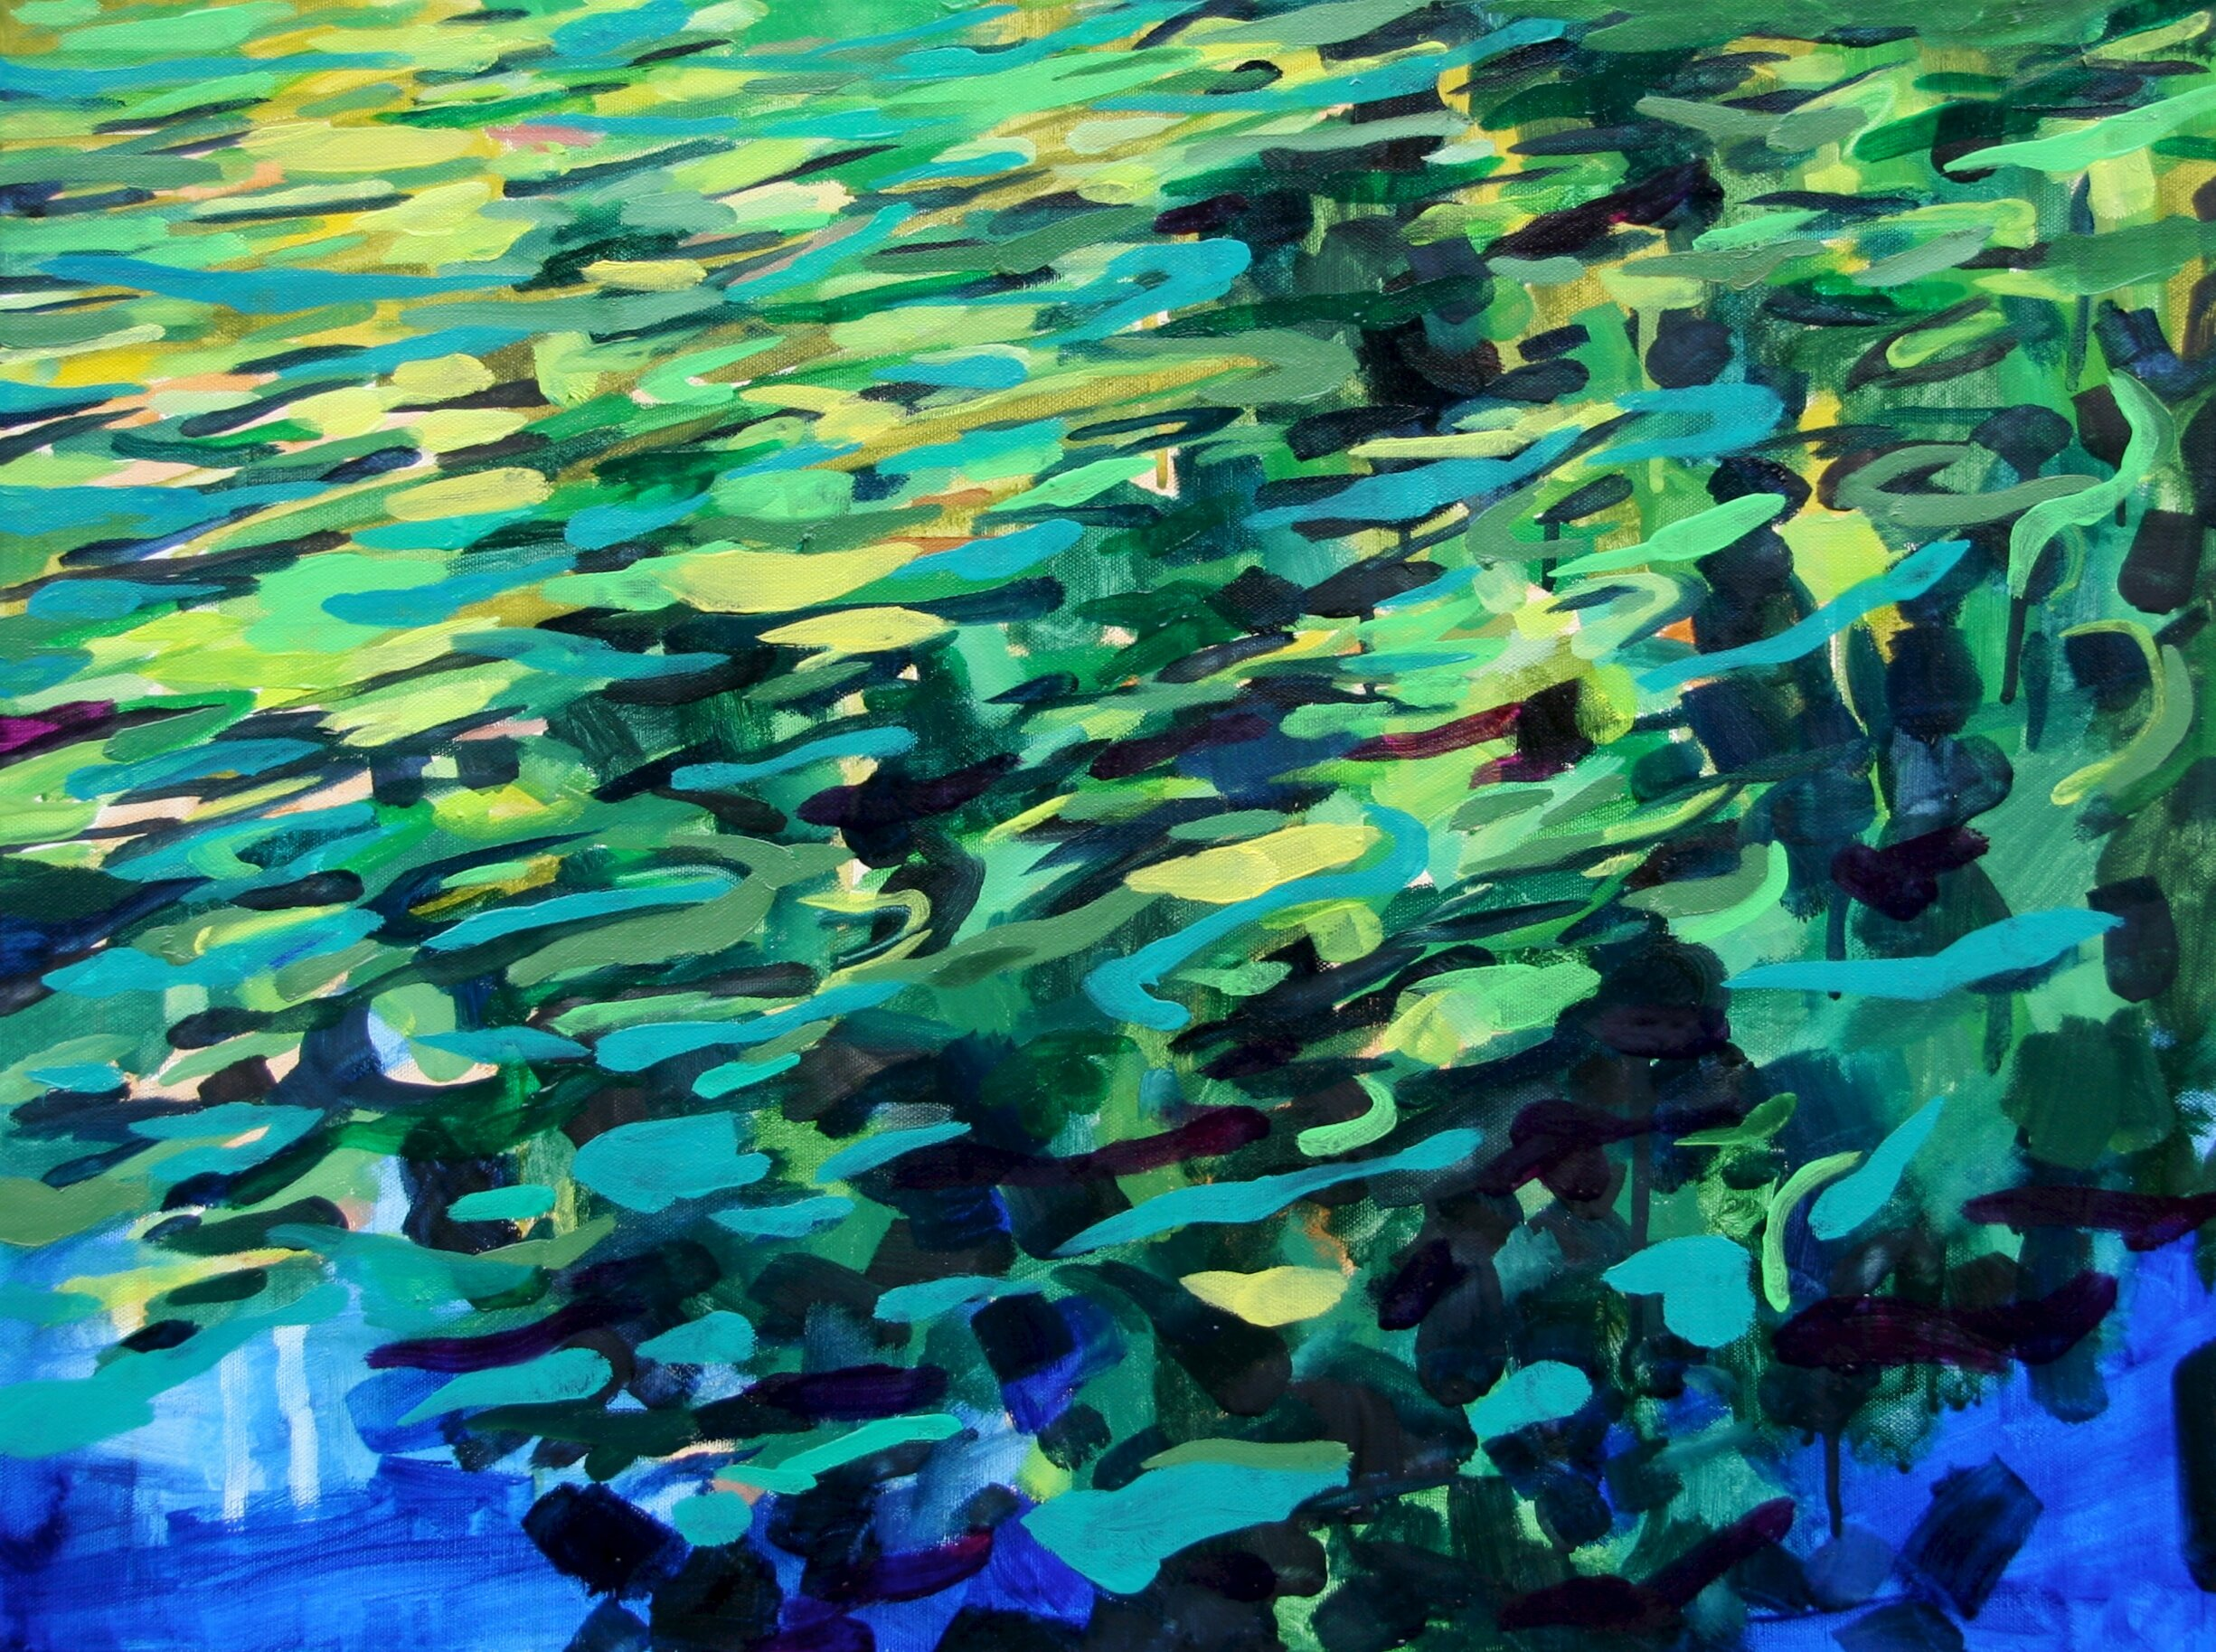 """'New Depths'  2014  24"""" x 18""""  water soluble oil on canvas  sold"""